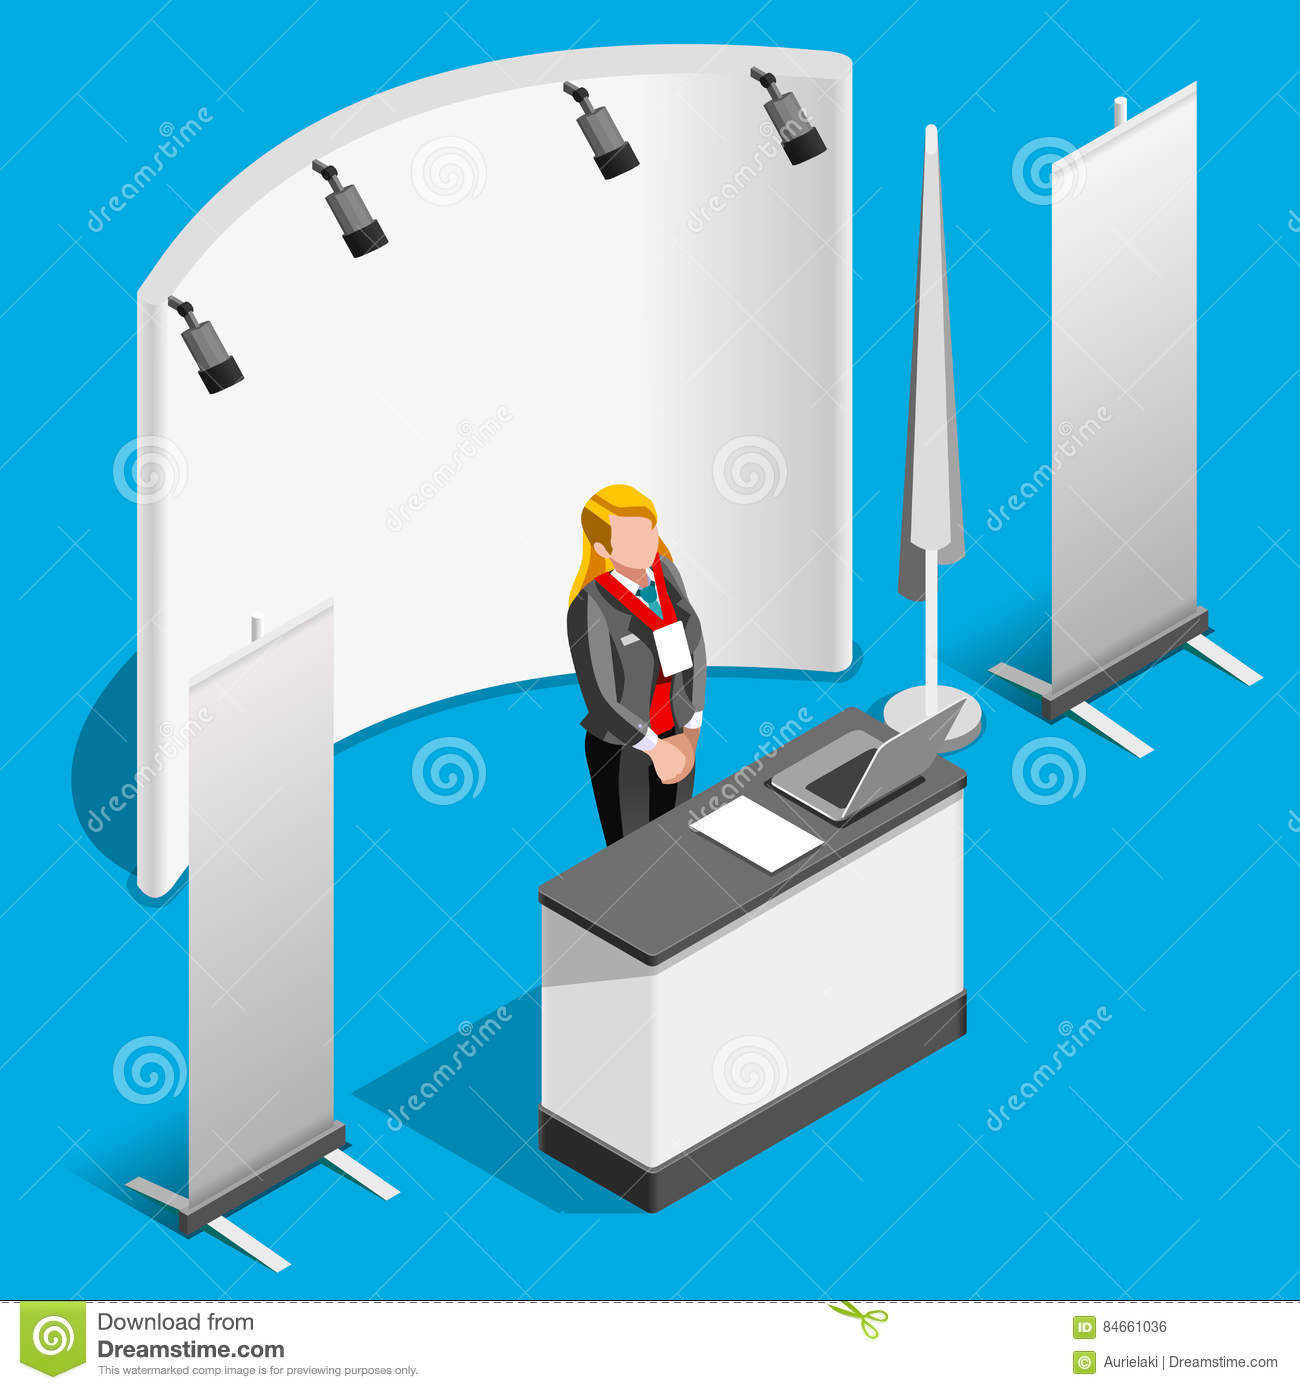 Exhibition Stand Design Illustrator : Booth stand d exhibition isometric people vector